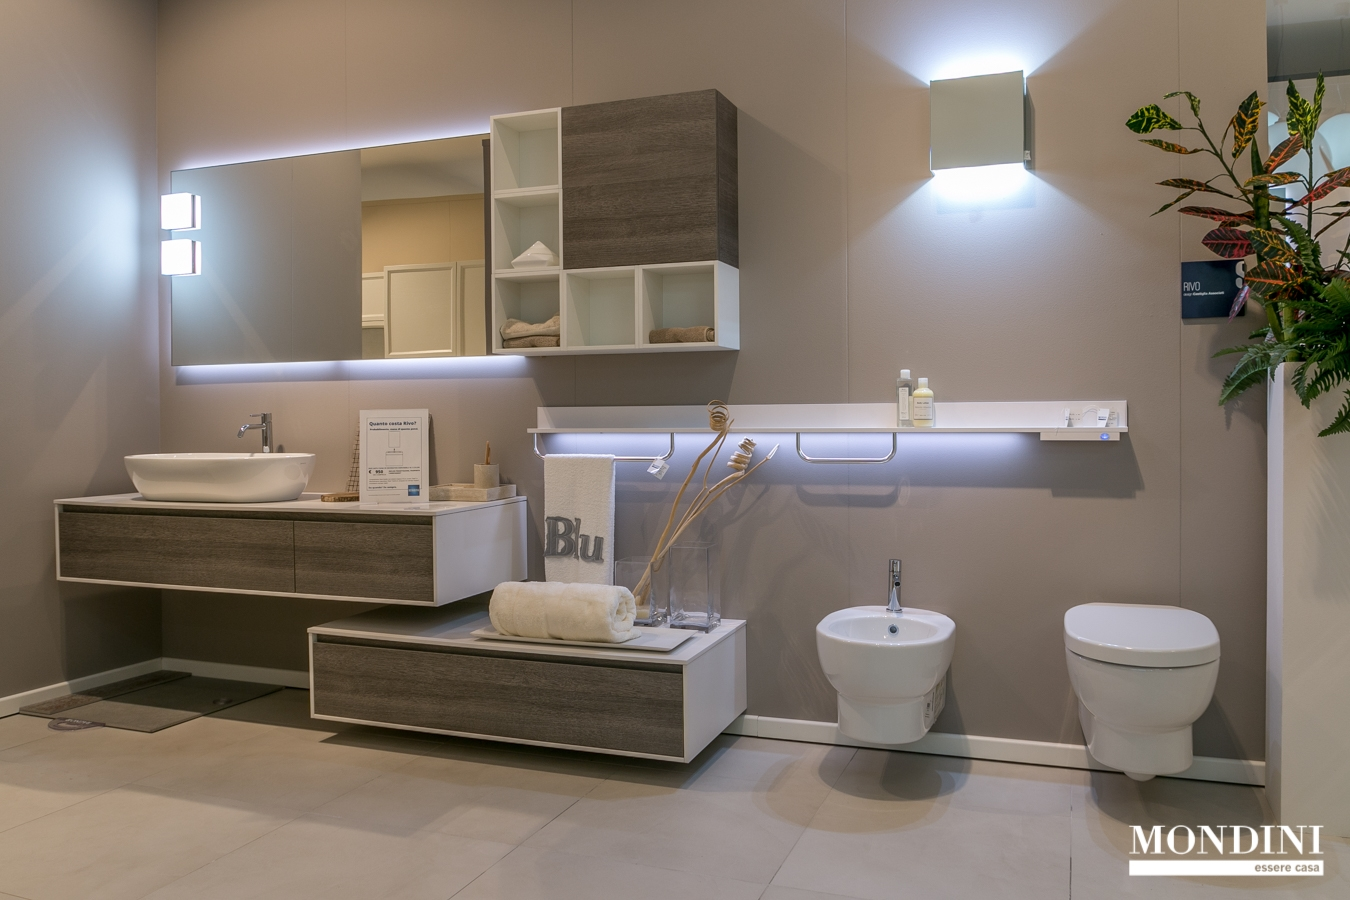 outlet arredo bagno roma | sweetwaterrescue - Arredo Bagno Outlet